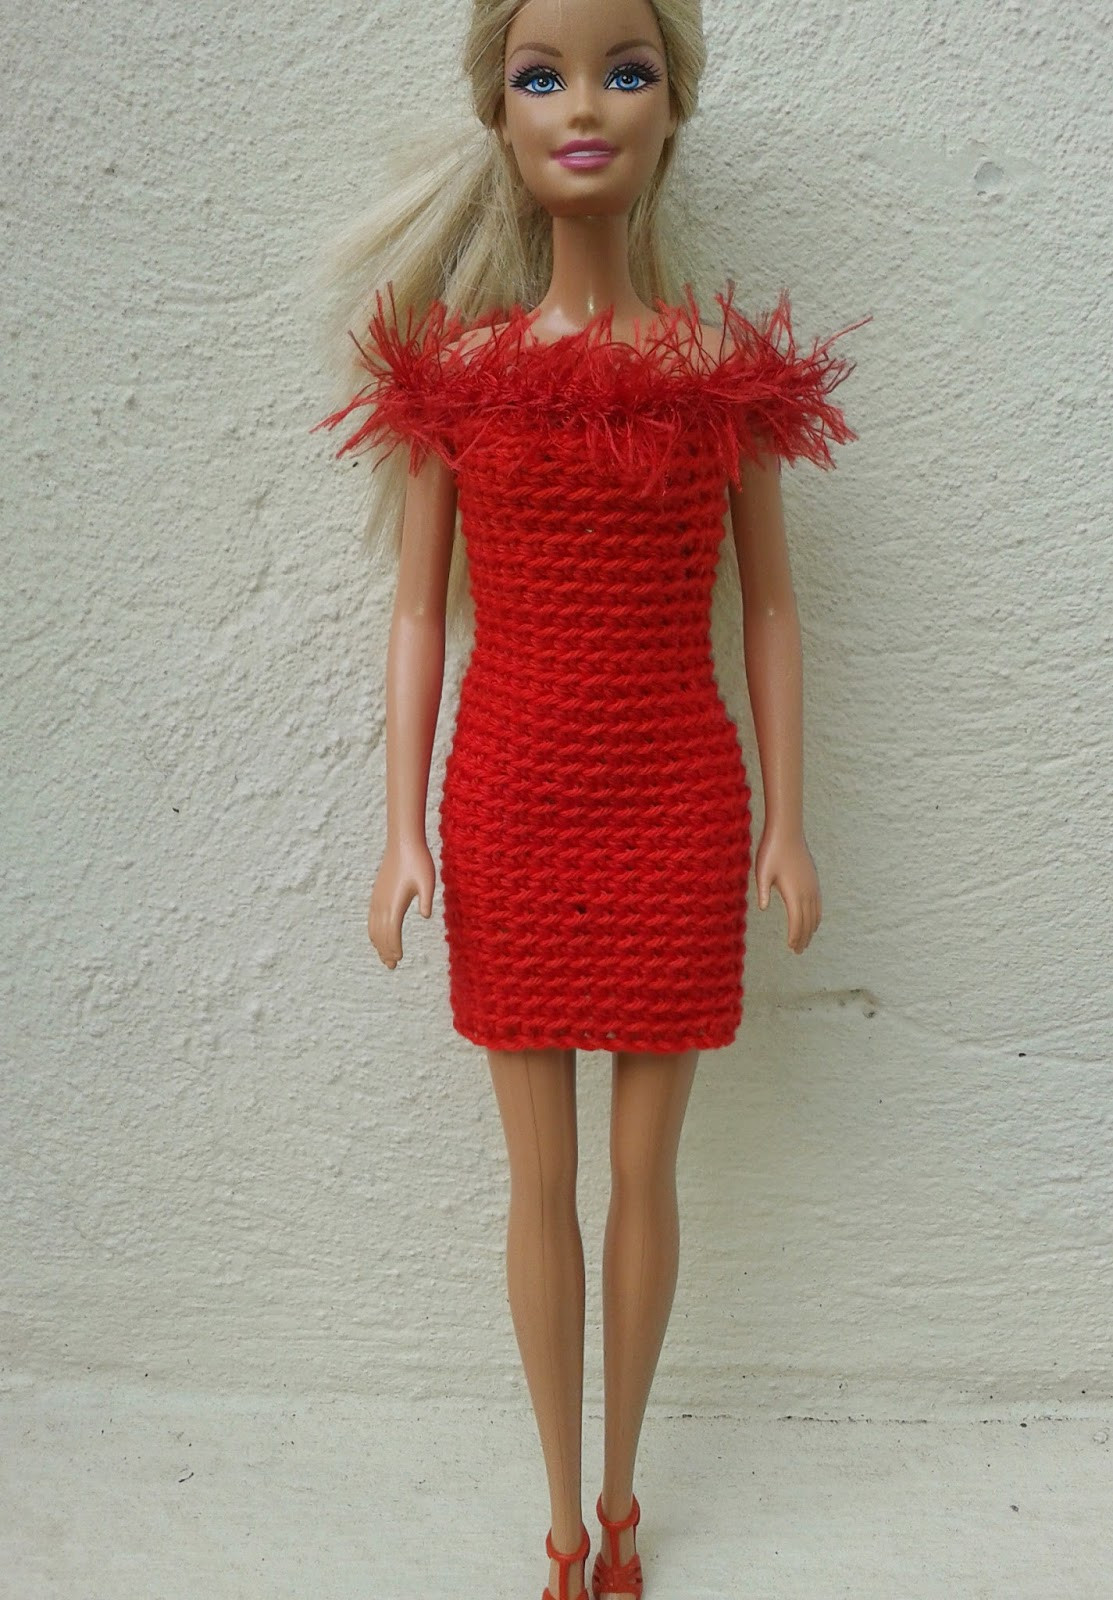 Elegant Linmary Knits Barbie In Red Crochet Dresses Crochet Dress Of Awesome 50 Pictures Crochet Dress